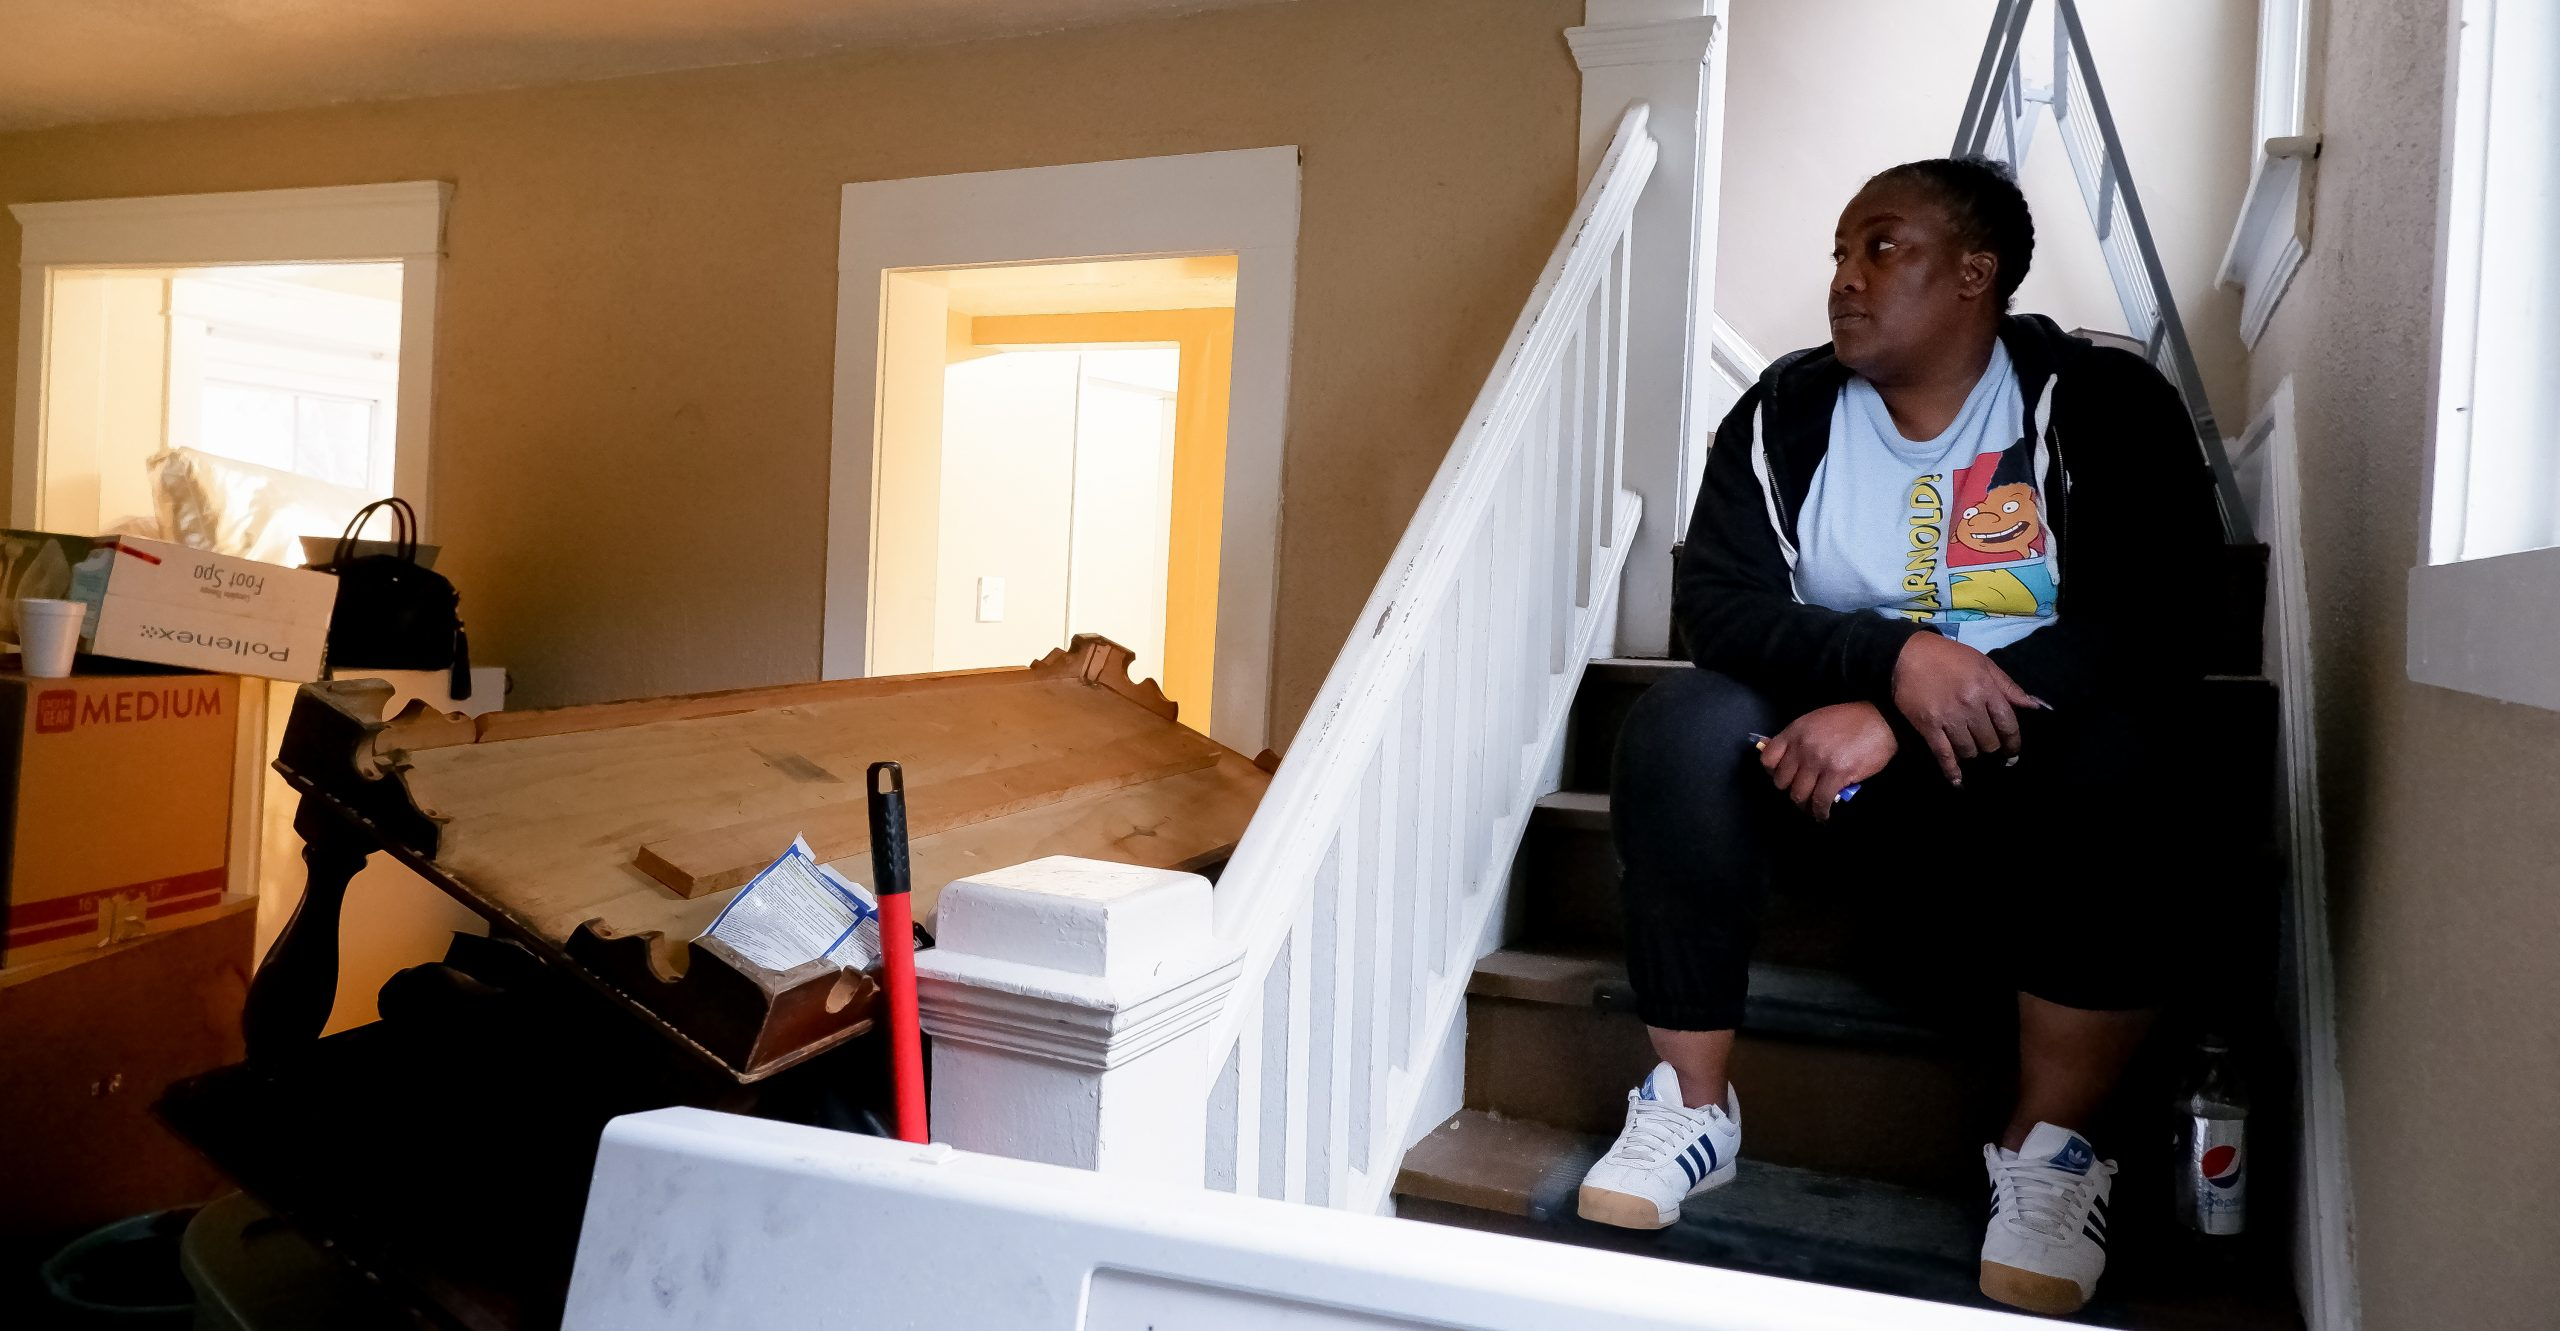 Eviction moratoriums didn't stop judges in one Ohio city from ousting hundreds from their homes